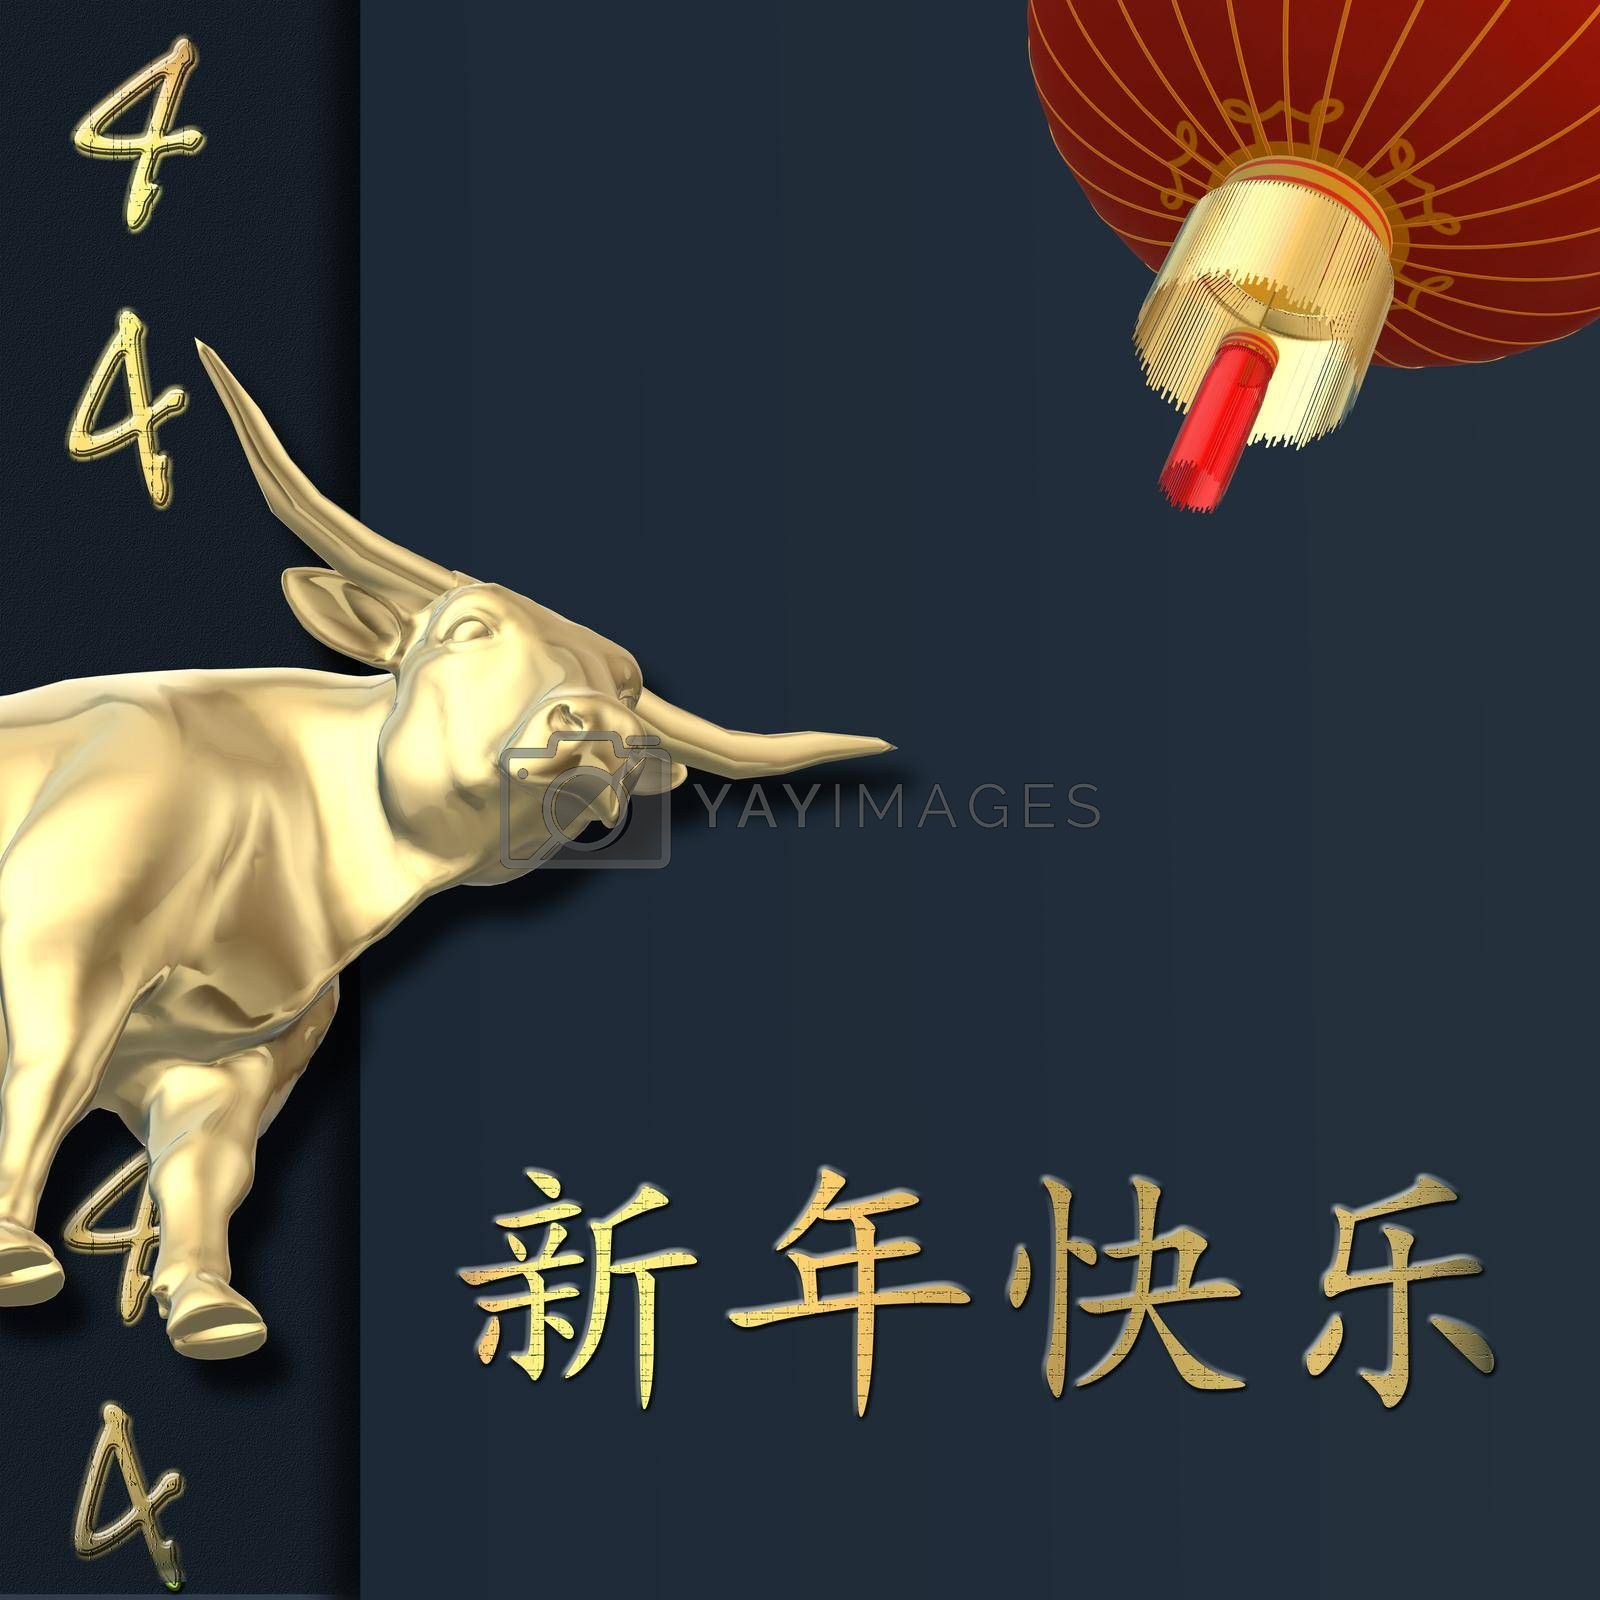 2021 Chinese new year, gold ox, lucky number 4, lantern on blue background. Gold text Happy Chinese New Year. Design for oriental 2021 new year card. 3D rendering